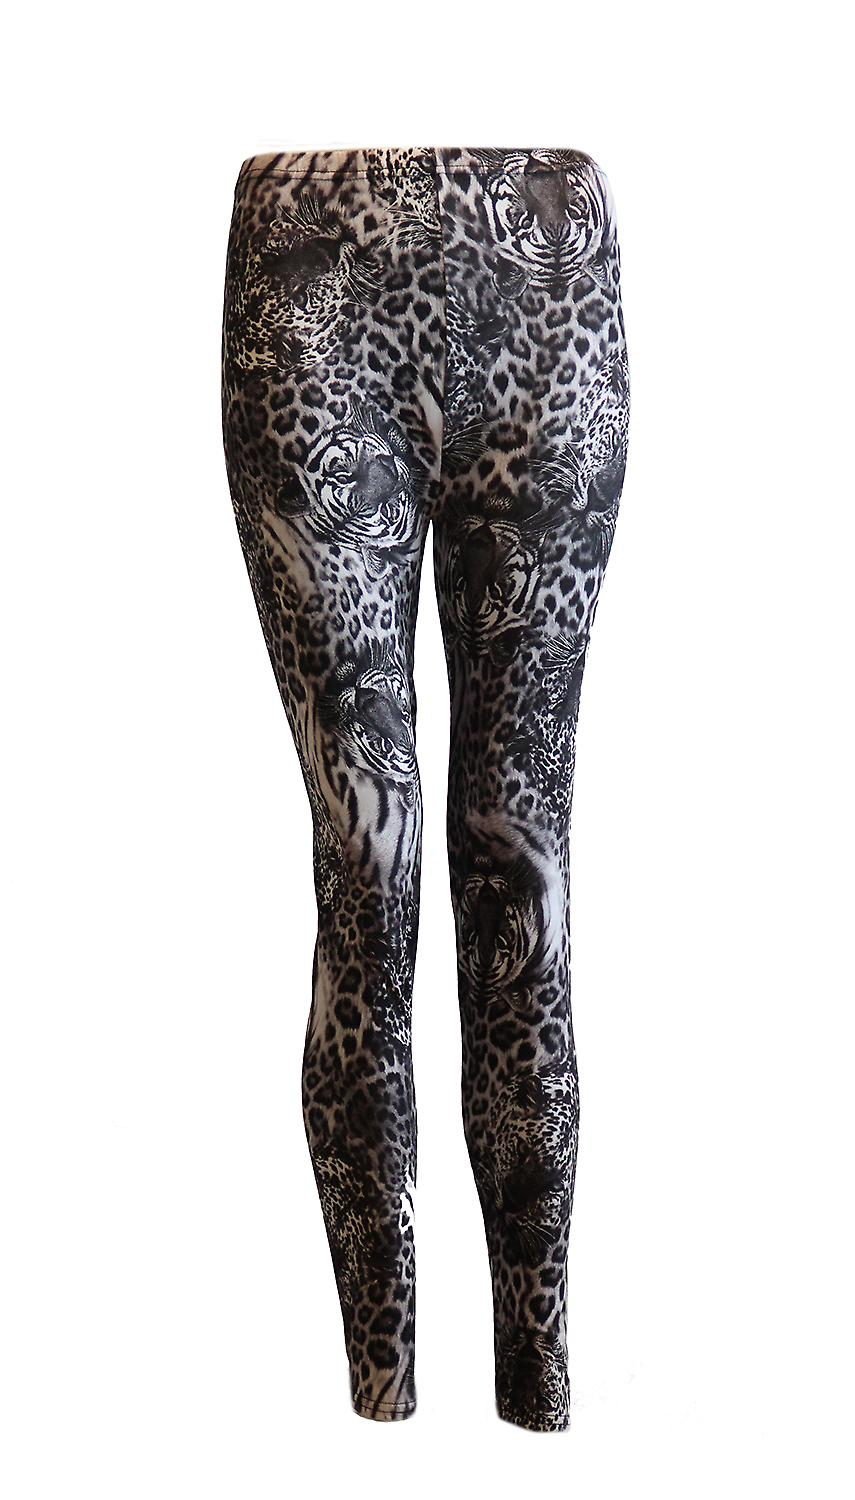 Waooh - Fashion - tiger and leopard print leggings